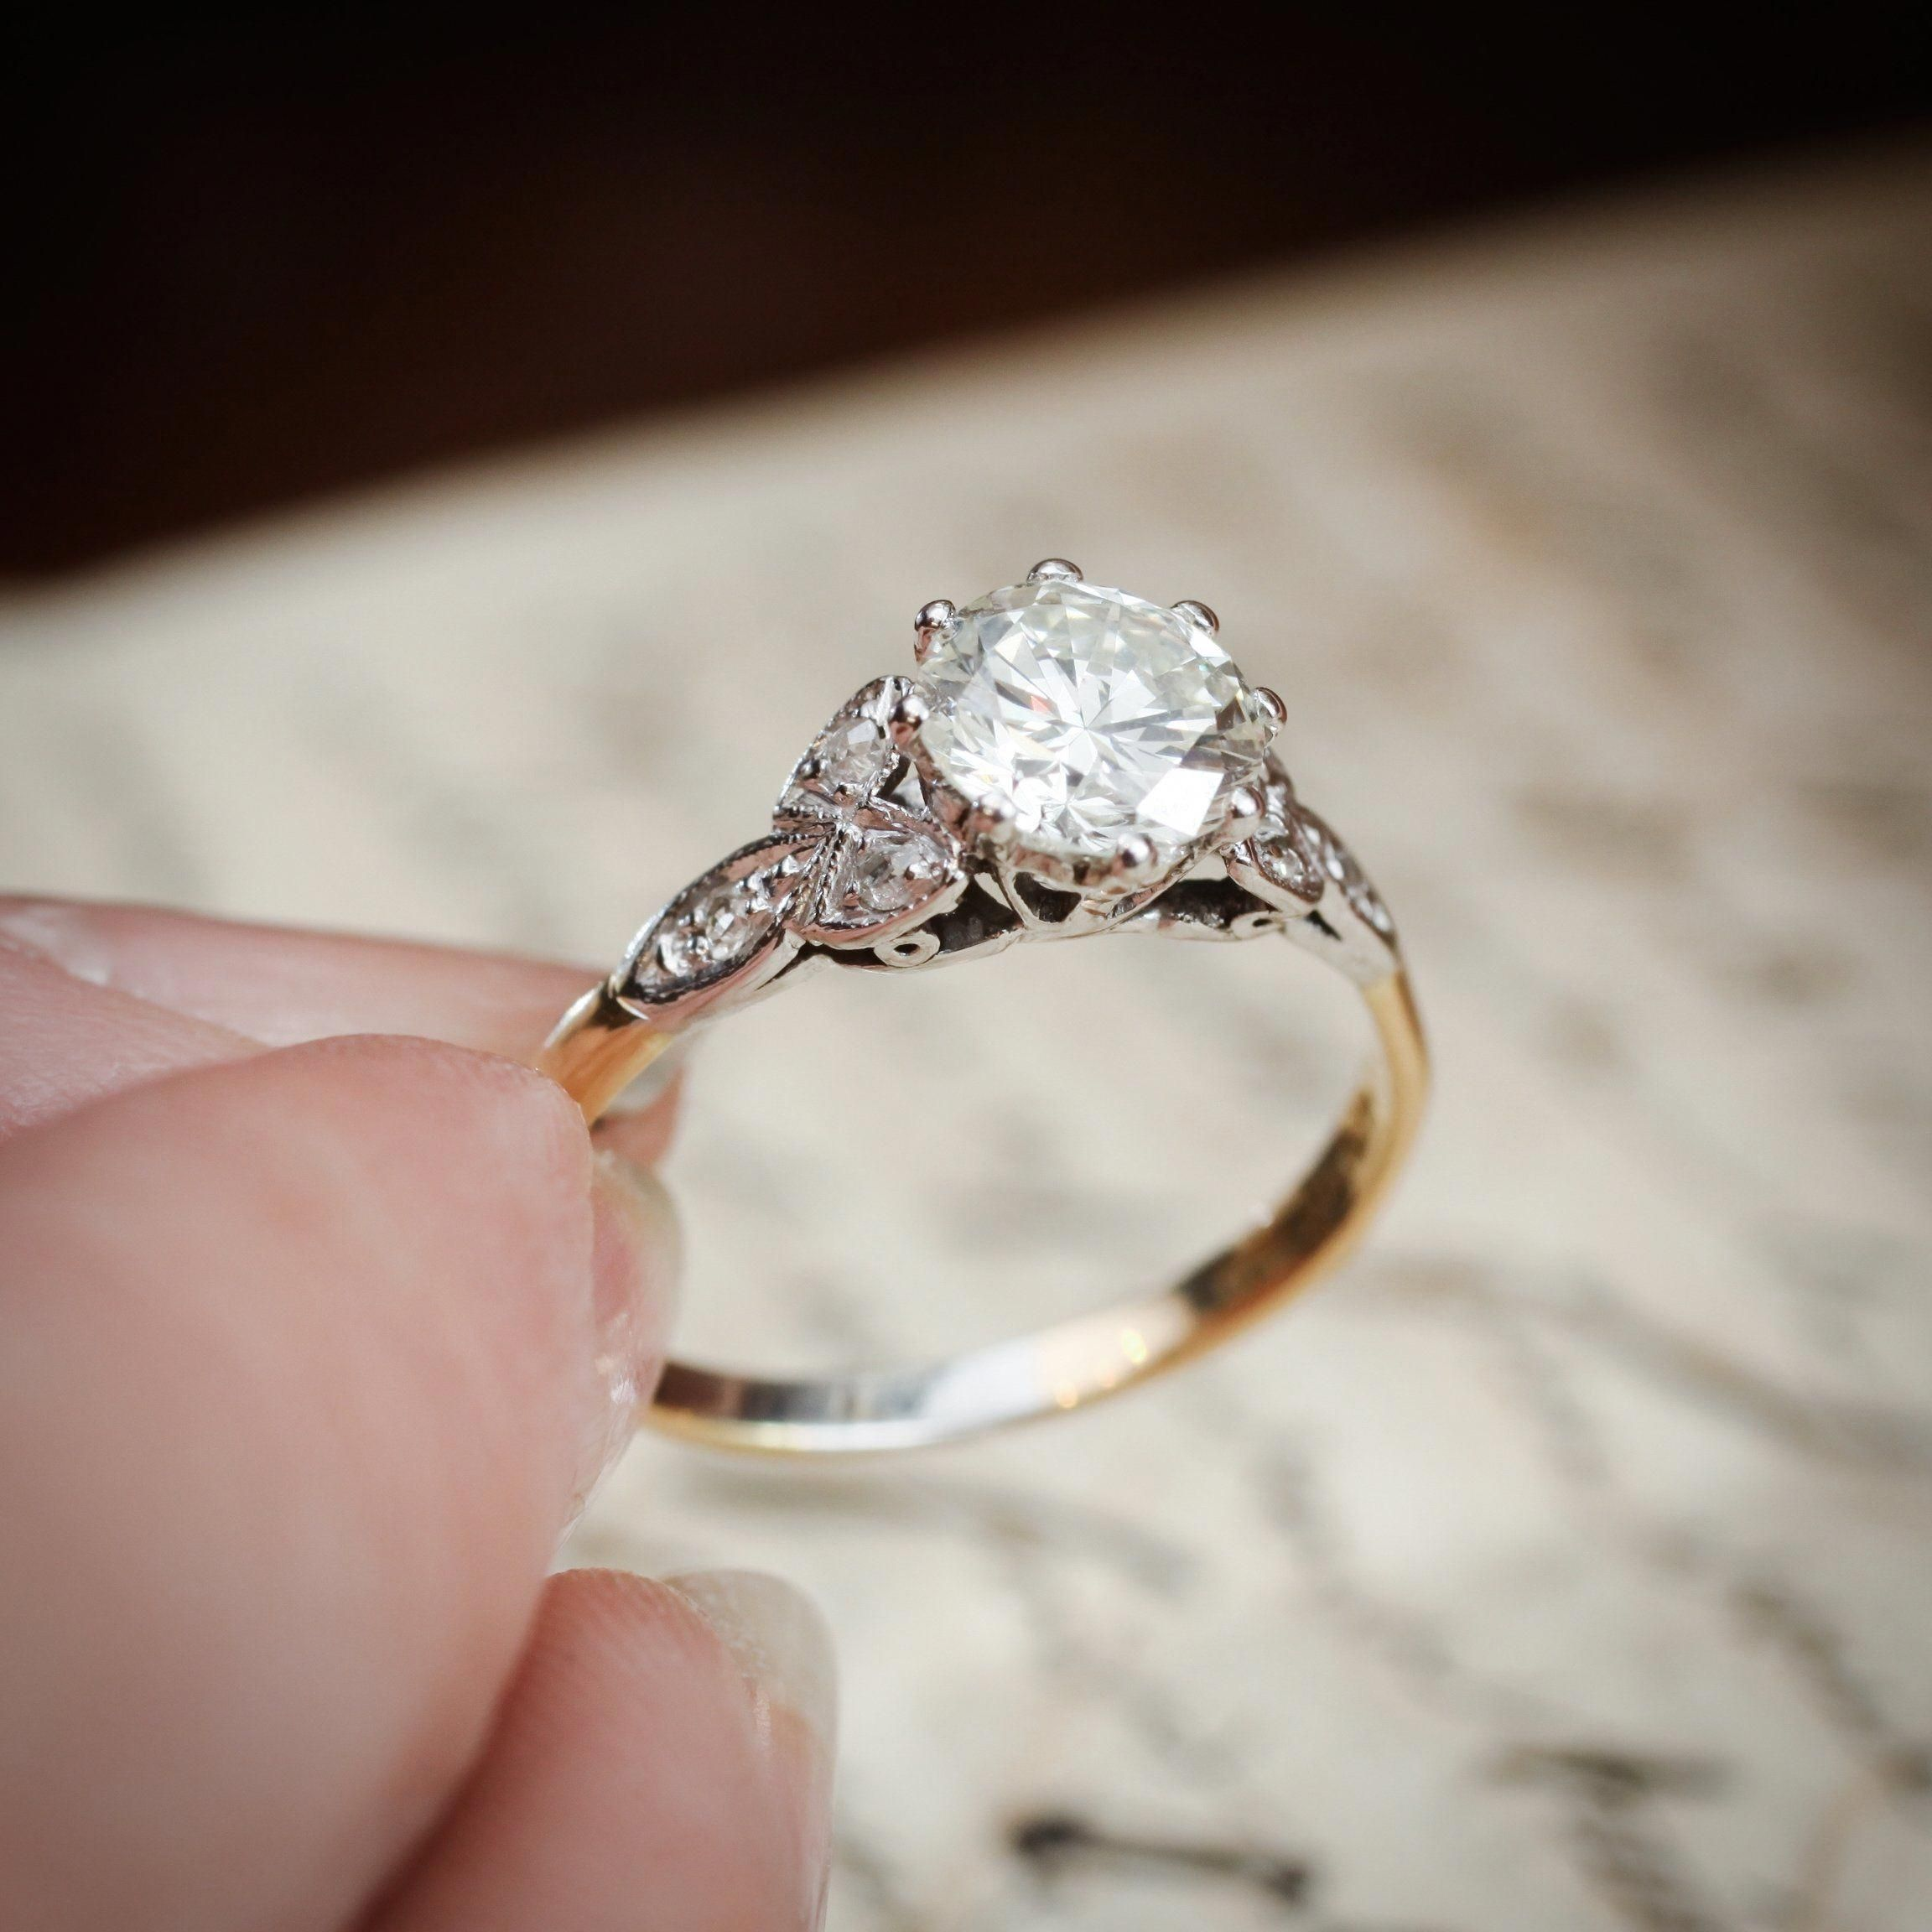 Diamond Engagement Rings On Sale Right Now Diamondengagementri Antique Diamond Engagement Rings Gemstone Diamond Engagement Rings Solitaire Engagement Ring